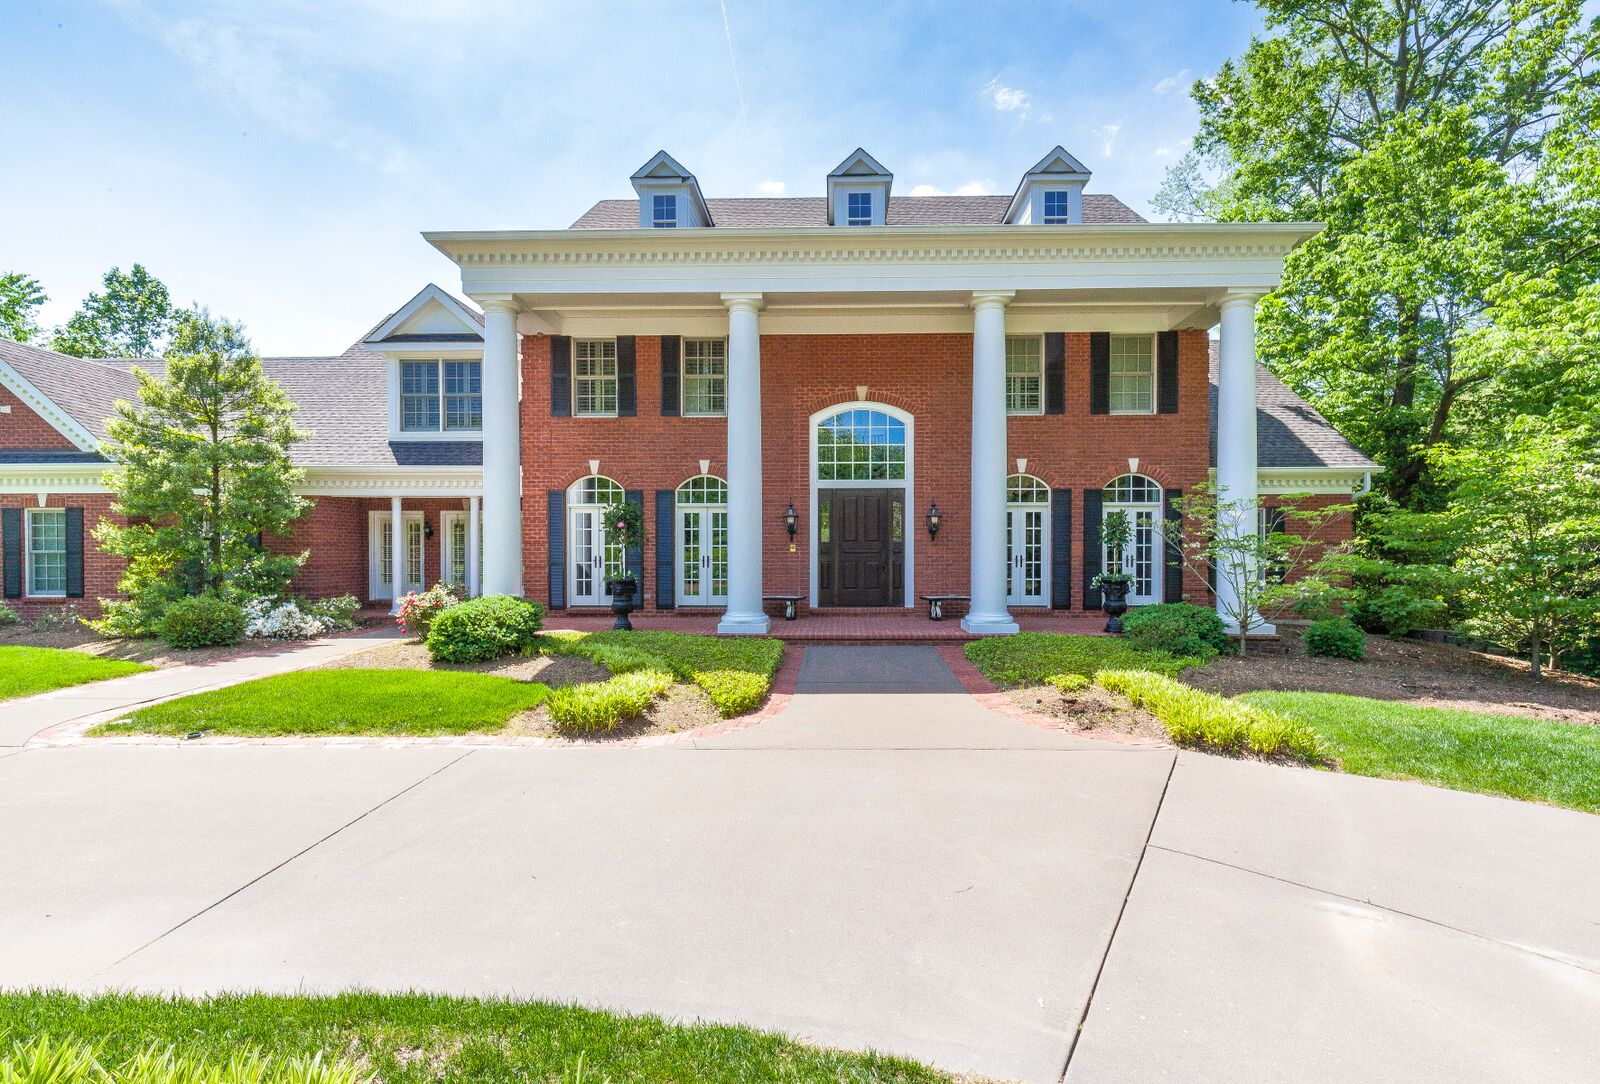 Single Family Home for Sale at 25 Deerfield Road Ladue, Missouri 63124 United States